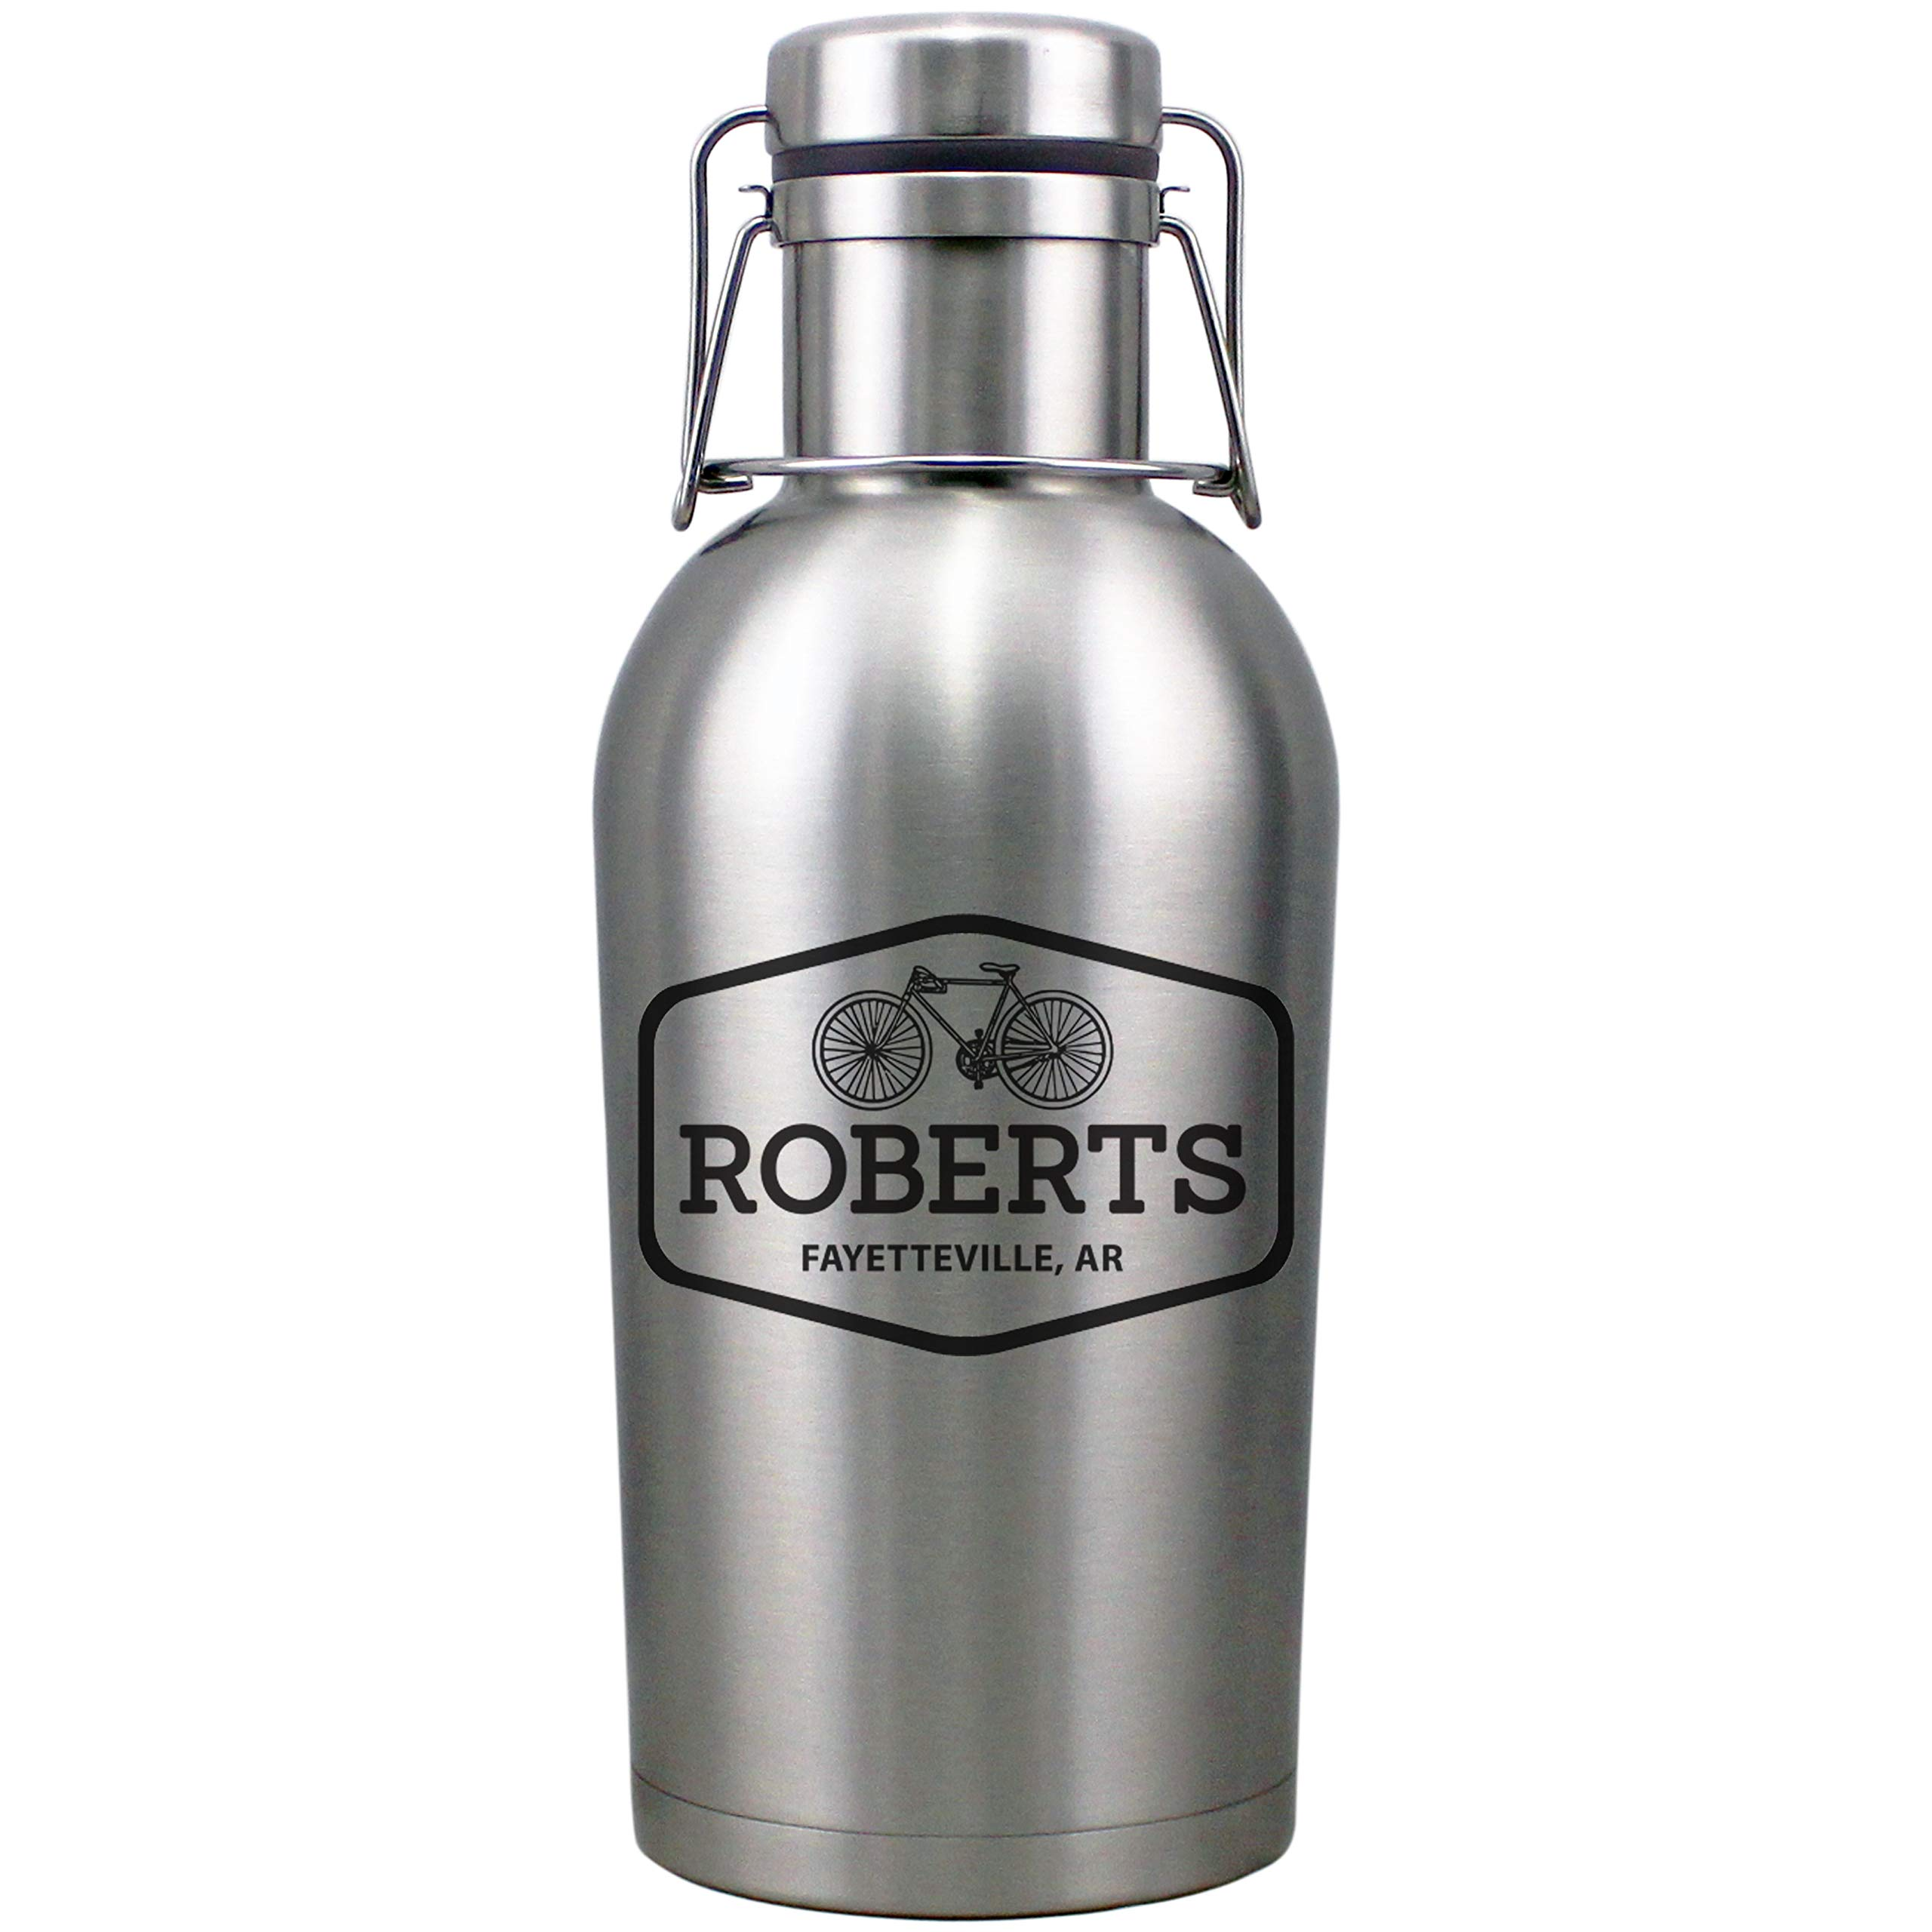 Pick Your Design Personalized Etched 64oz Insulated Stainless Steel Growler by Spotted Dog Company